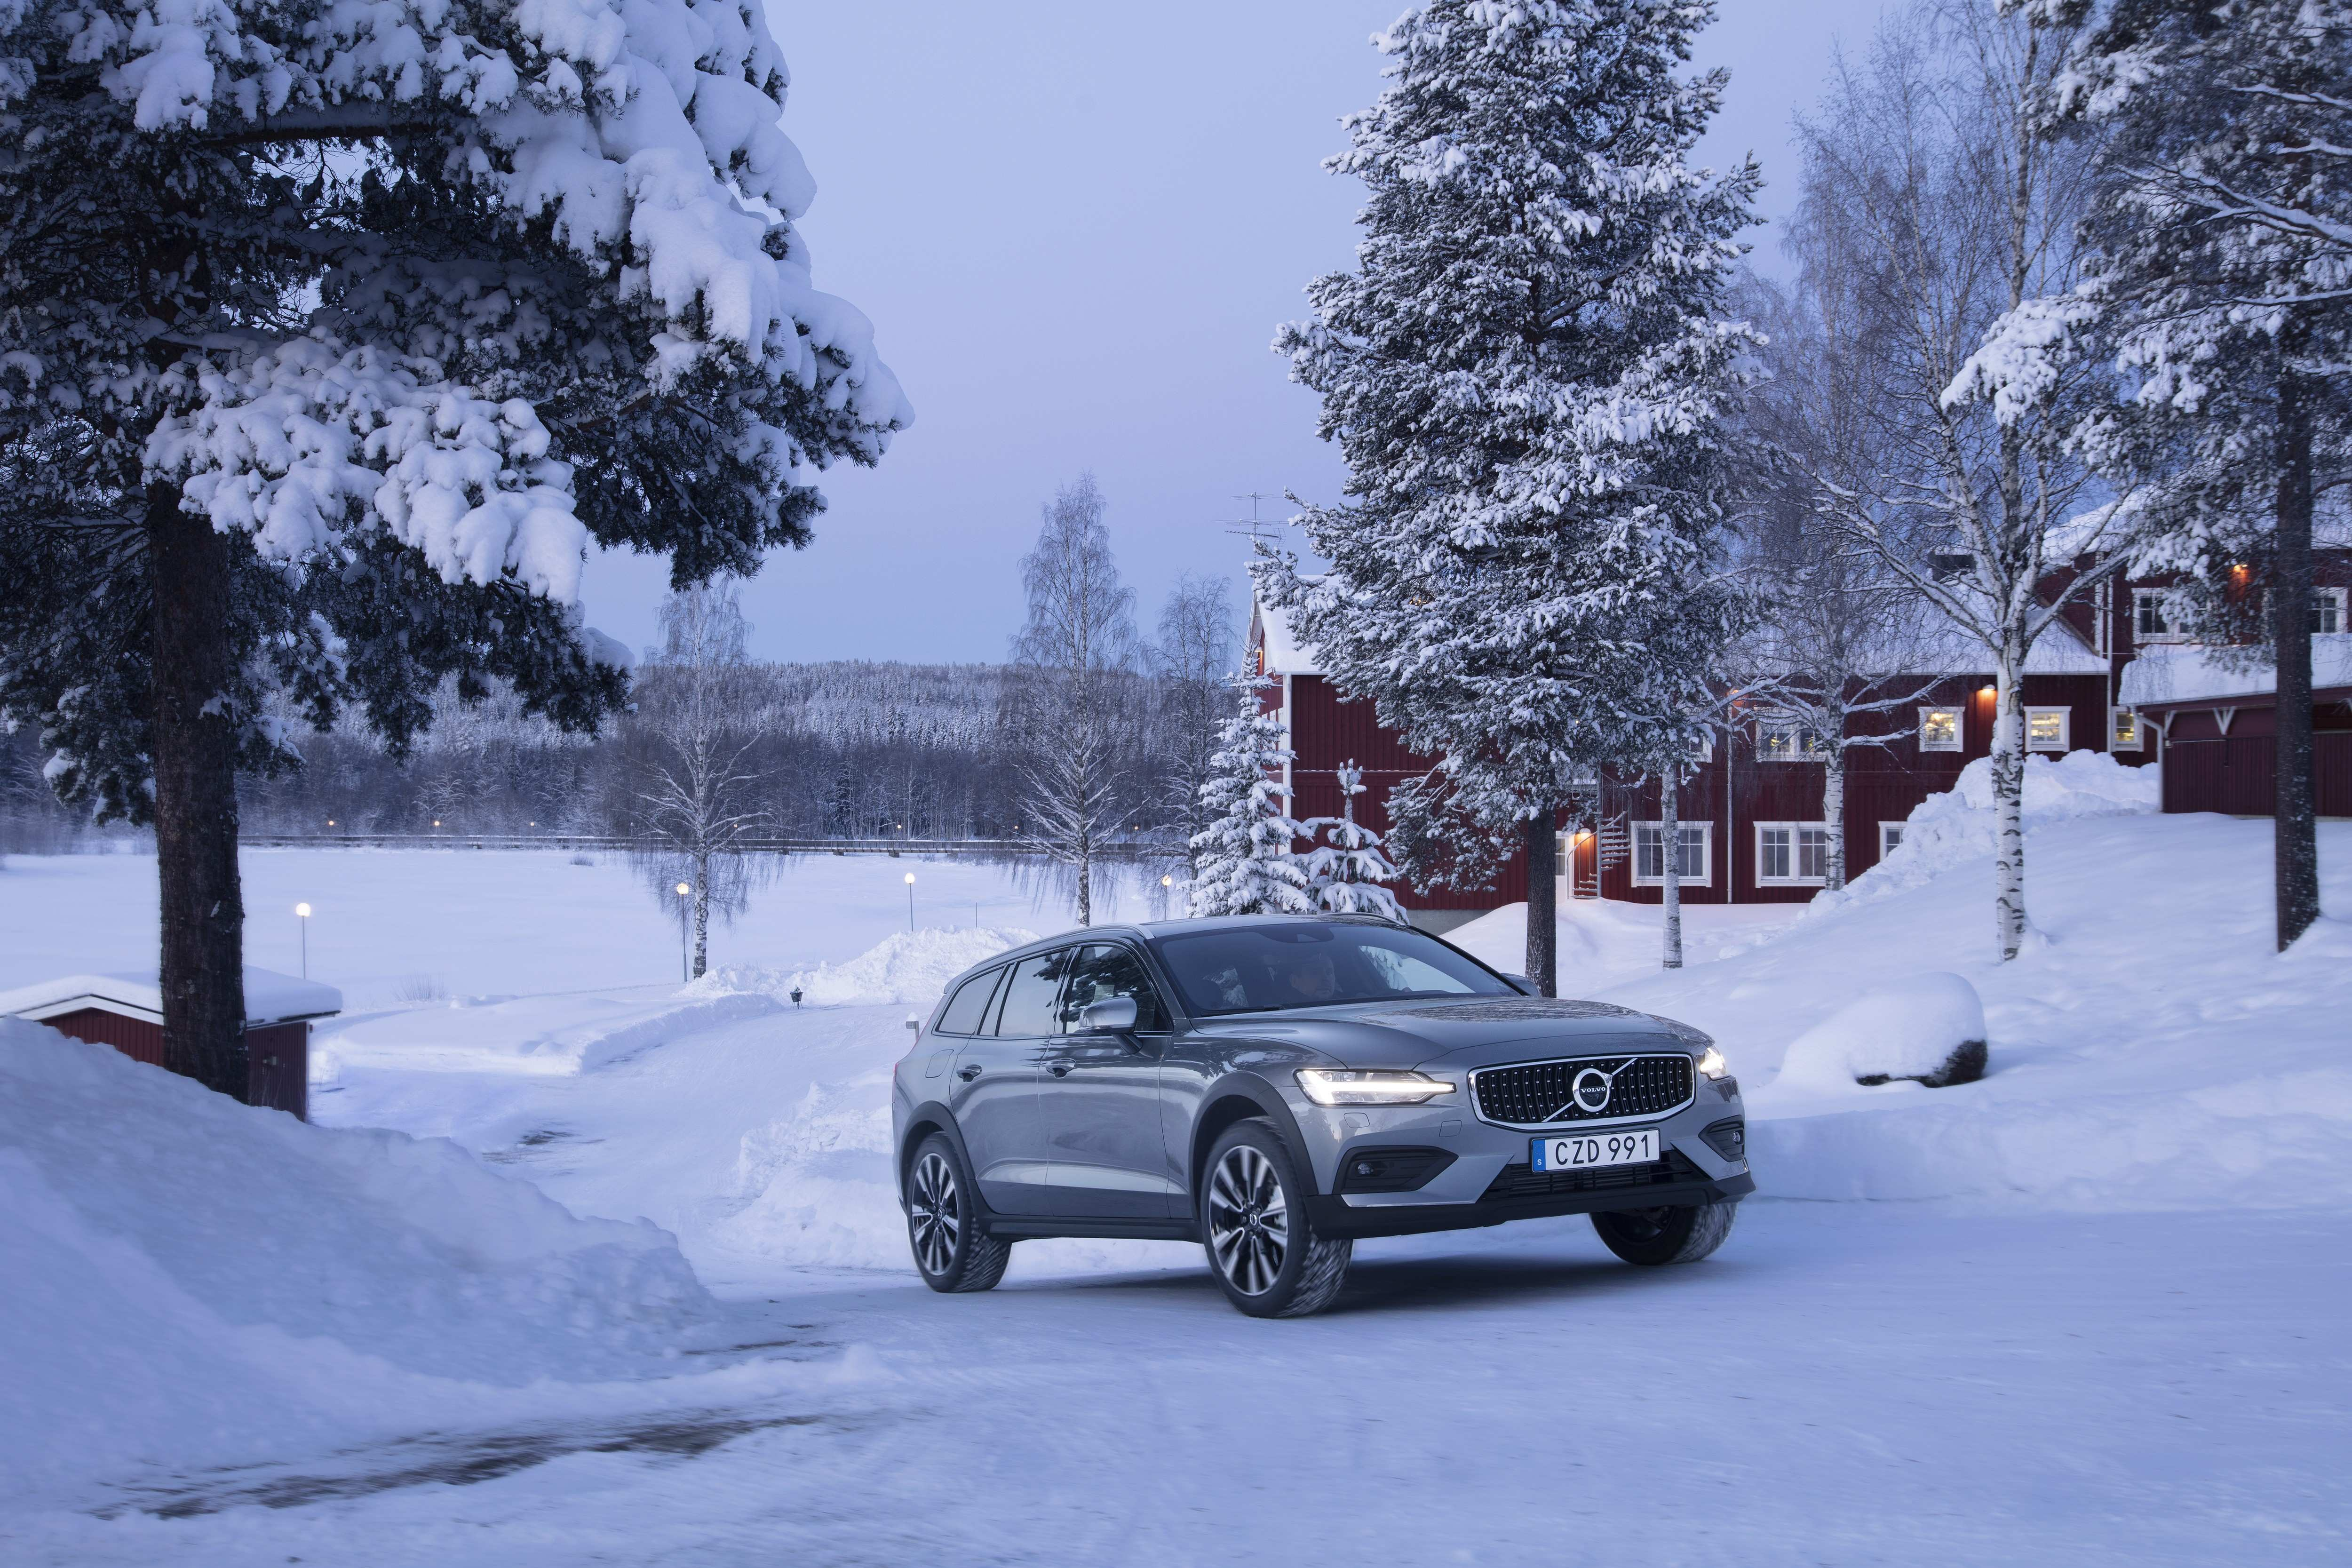 42 All New Volvo Crash Proof Car 2020 Research New